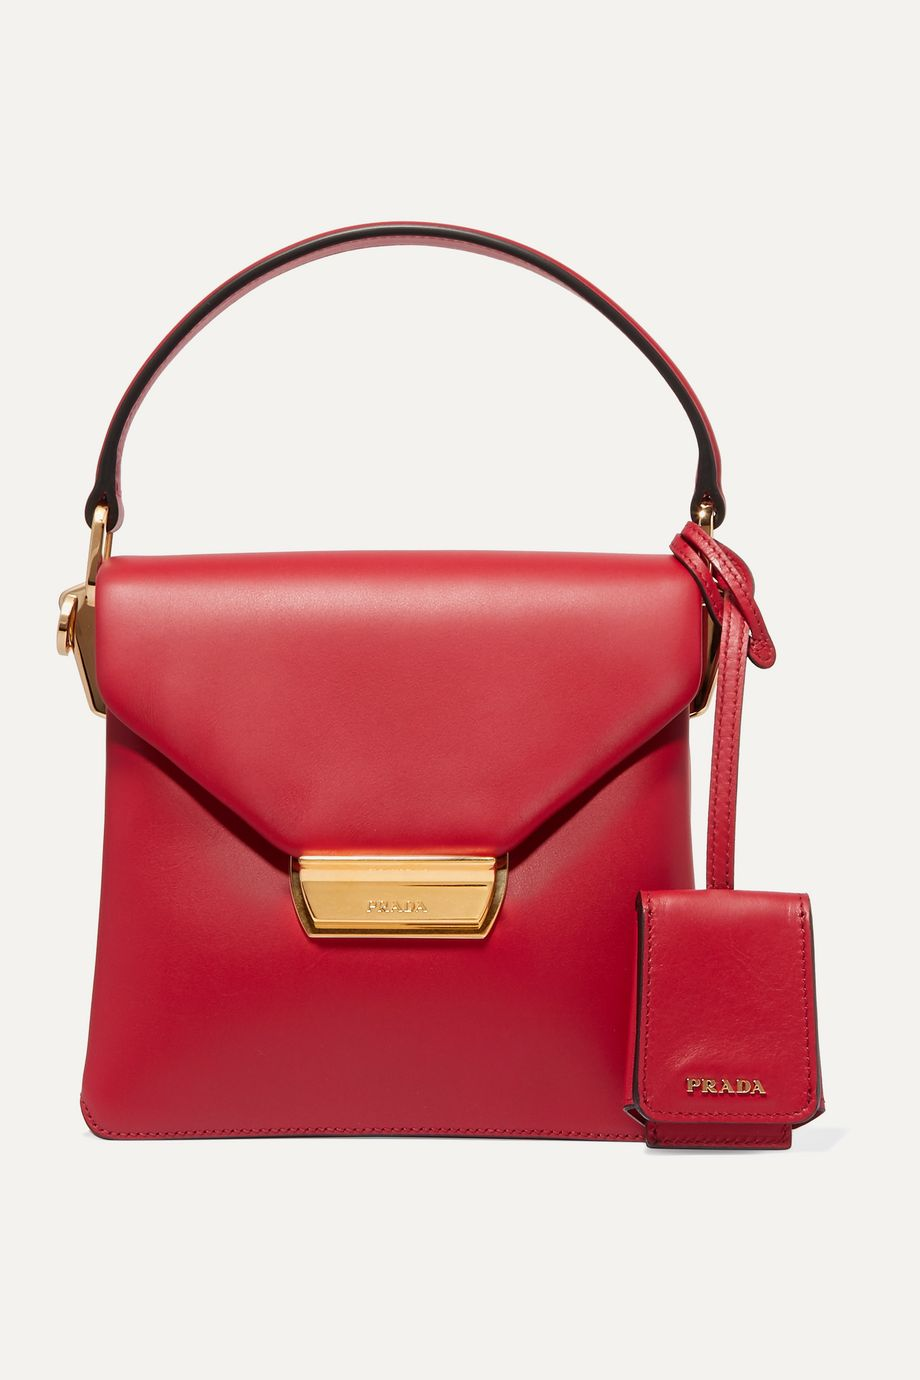 Prada Ingrid small leather shoulder bag